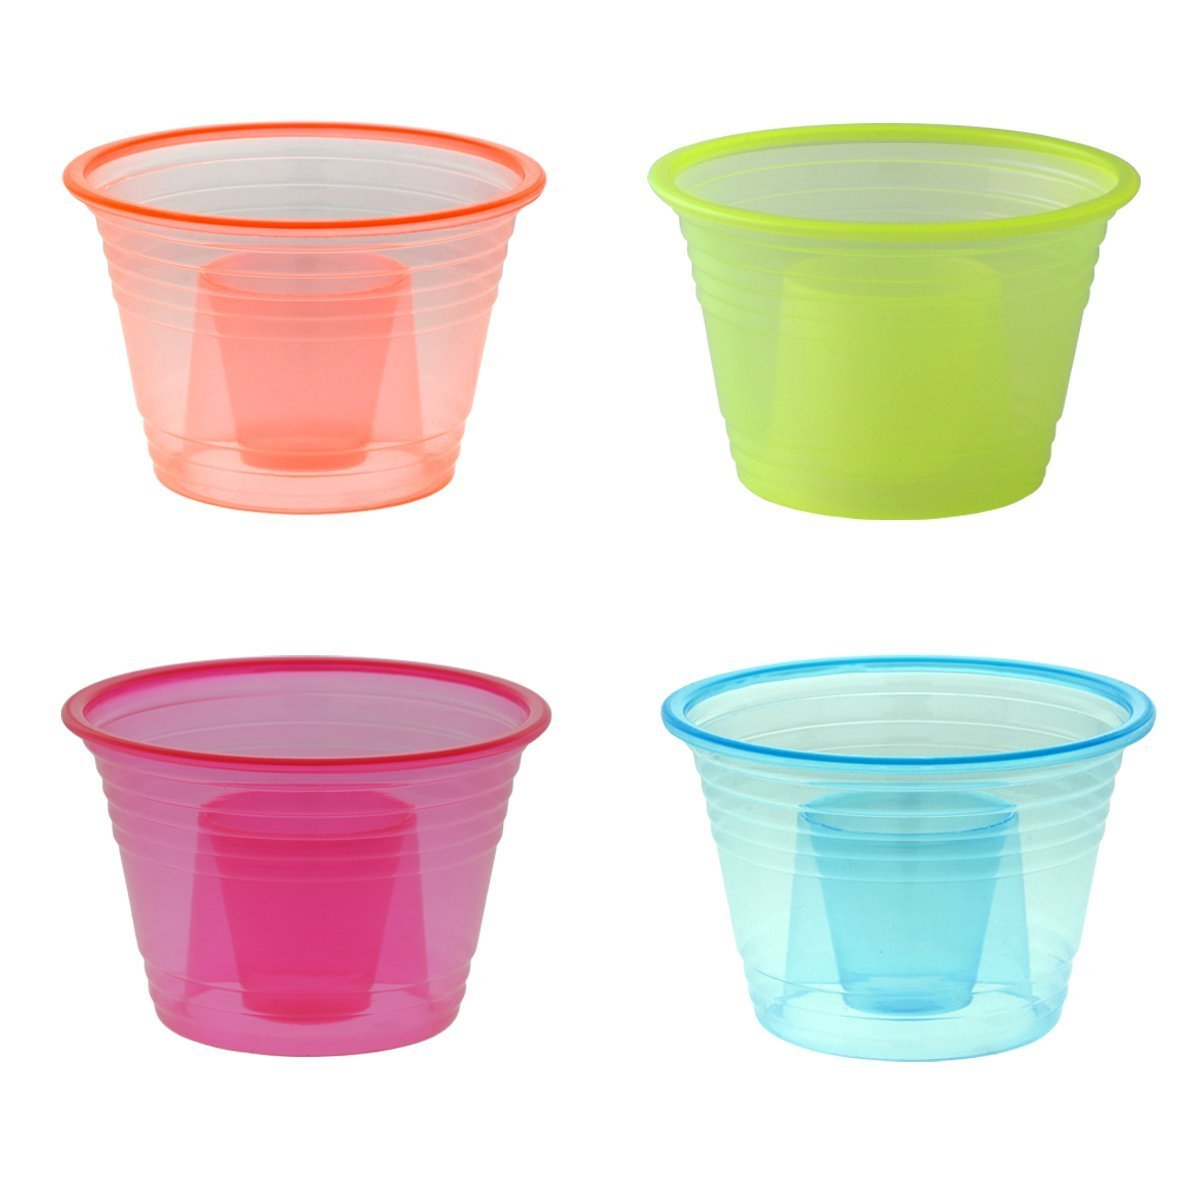 Zappy 500 Assorted Neon Colors Disposable Plastic Party Bomber Power Bomber Jager Bomb Cups Shot Glass Glasses Shot Cup Cups Jager bomb glasses